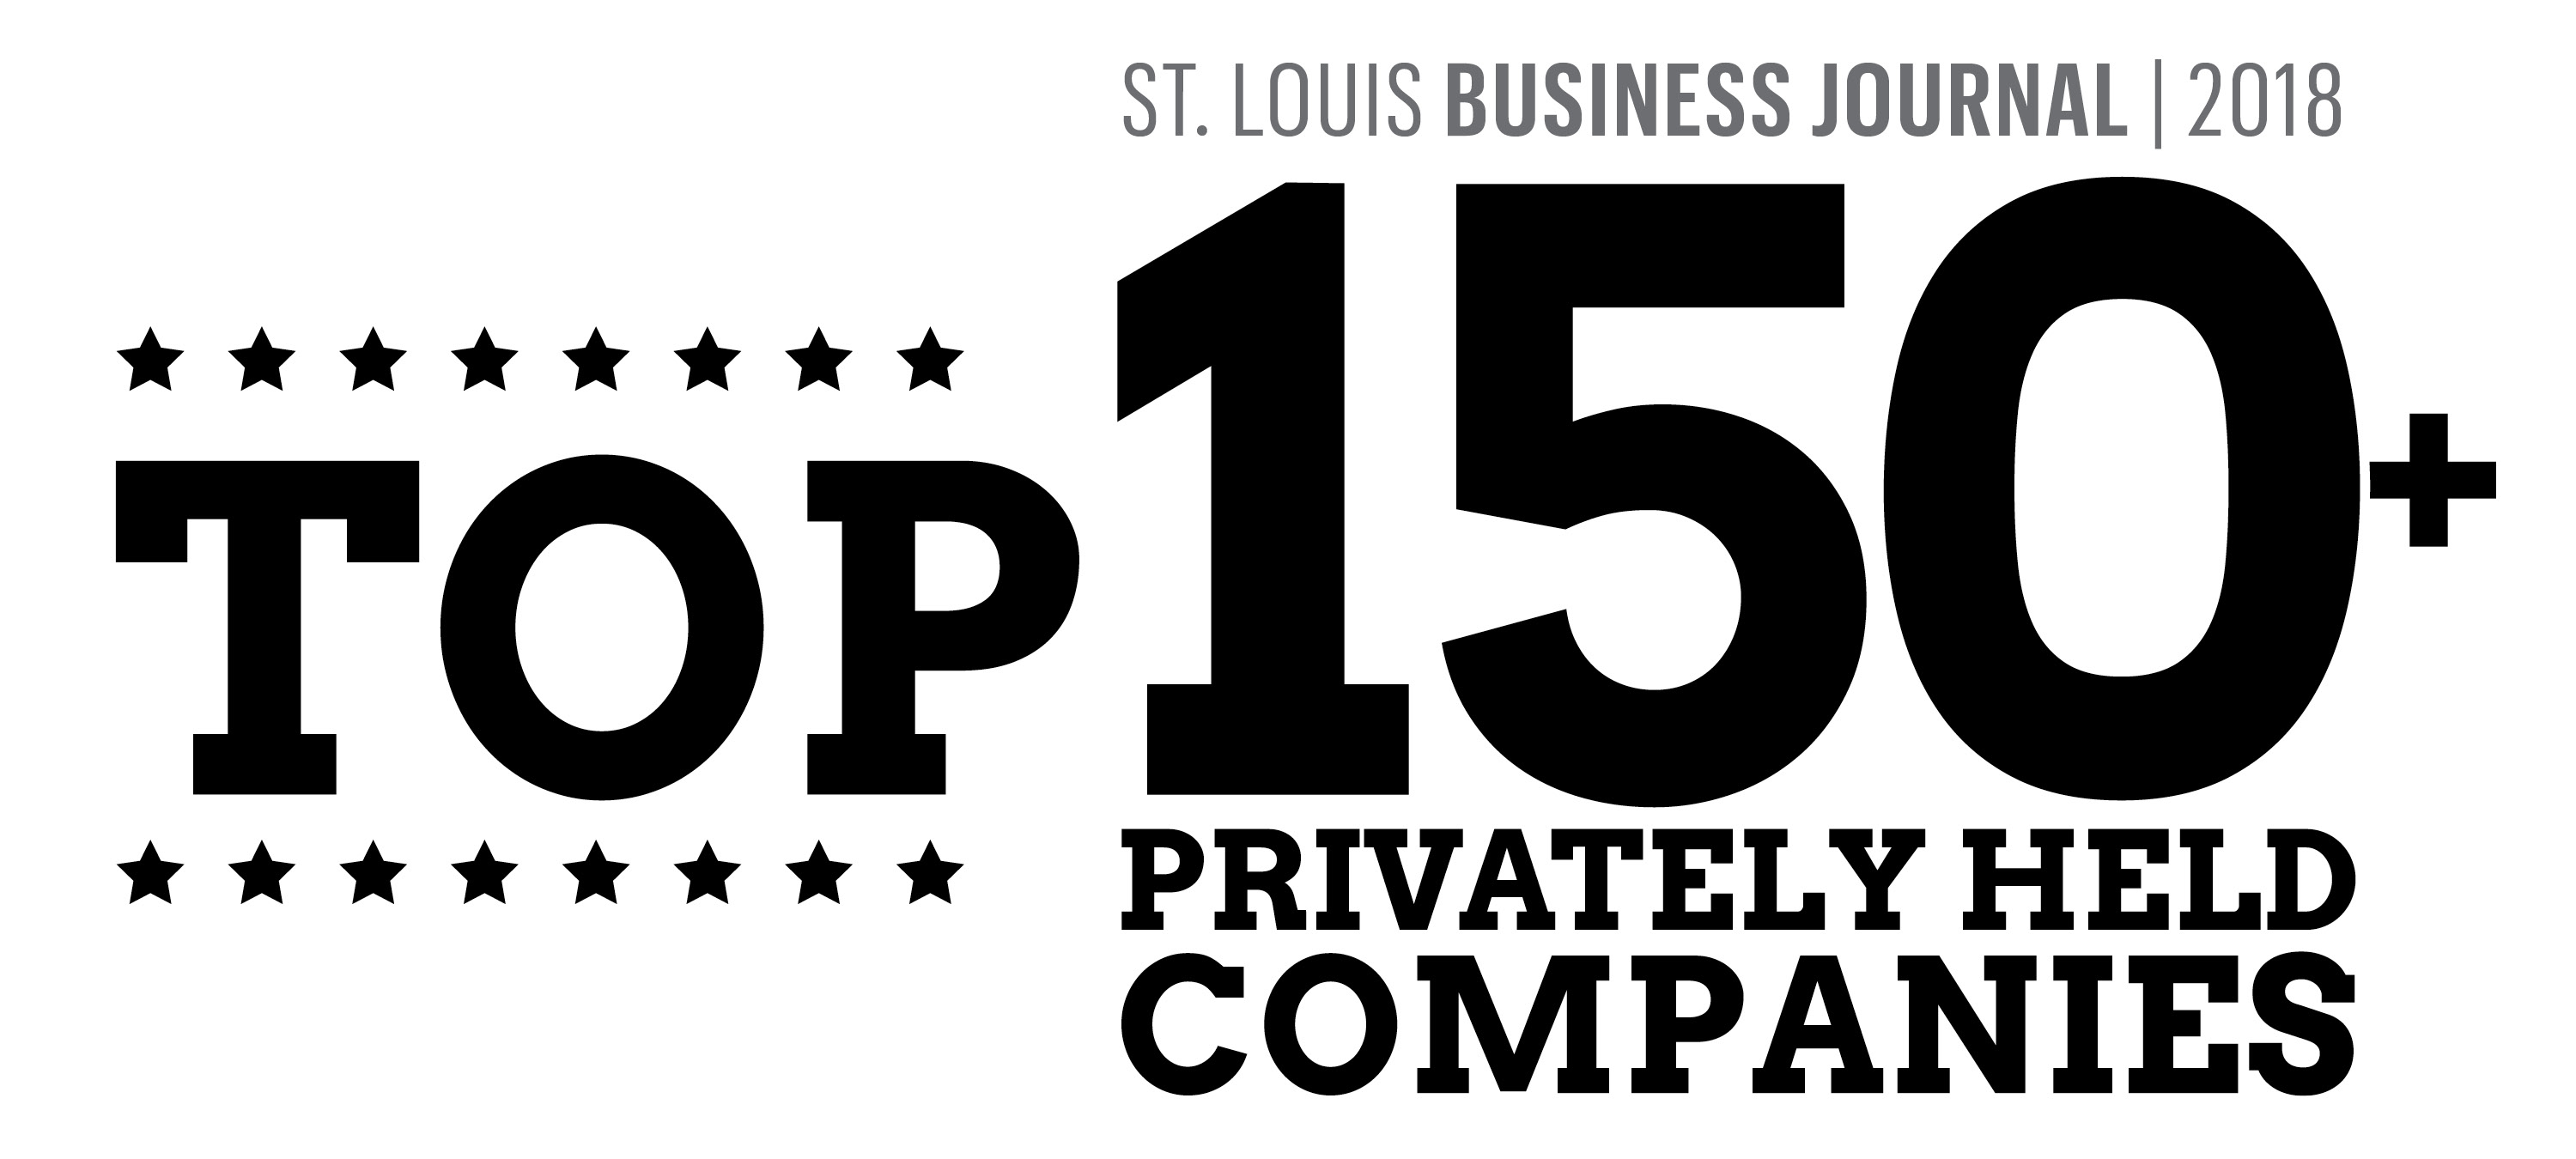 Sunset Transportation earns #153 spot on Top 150+ Privately Held